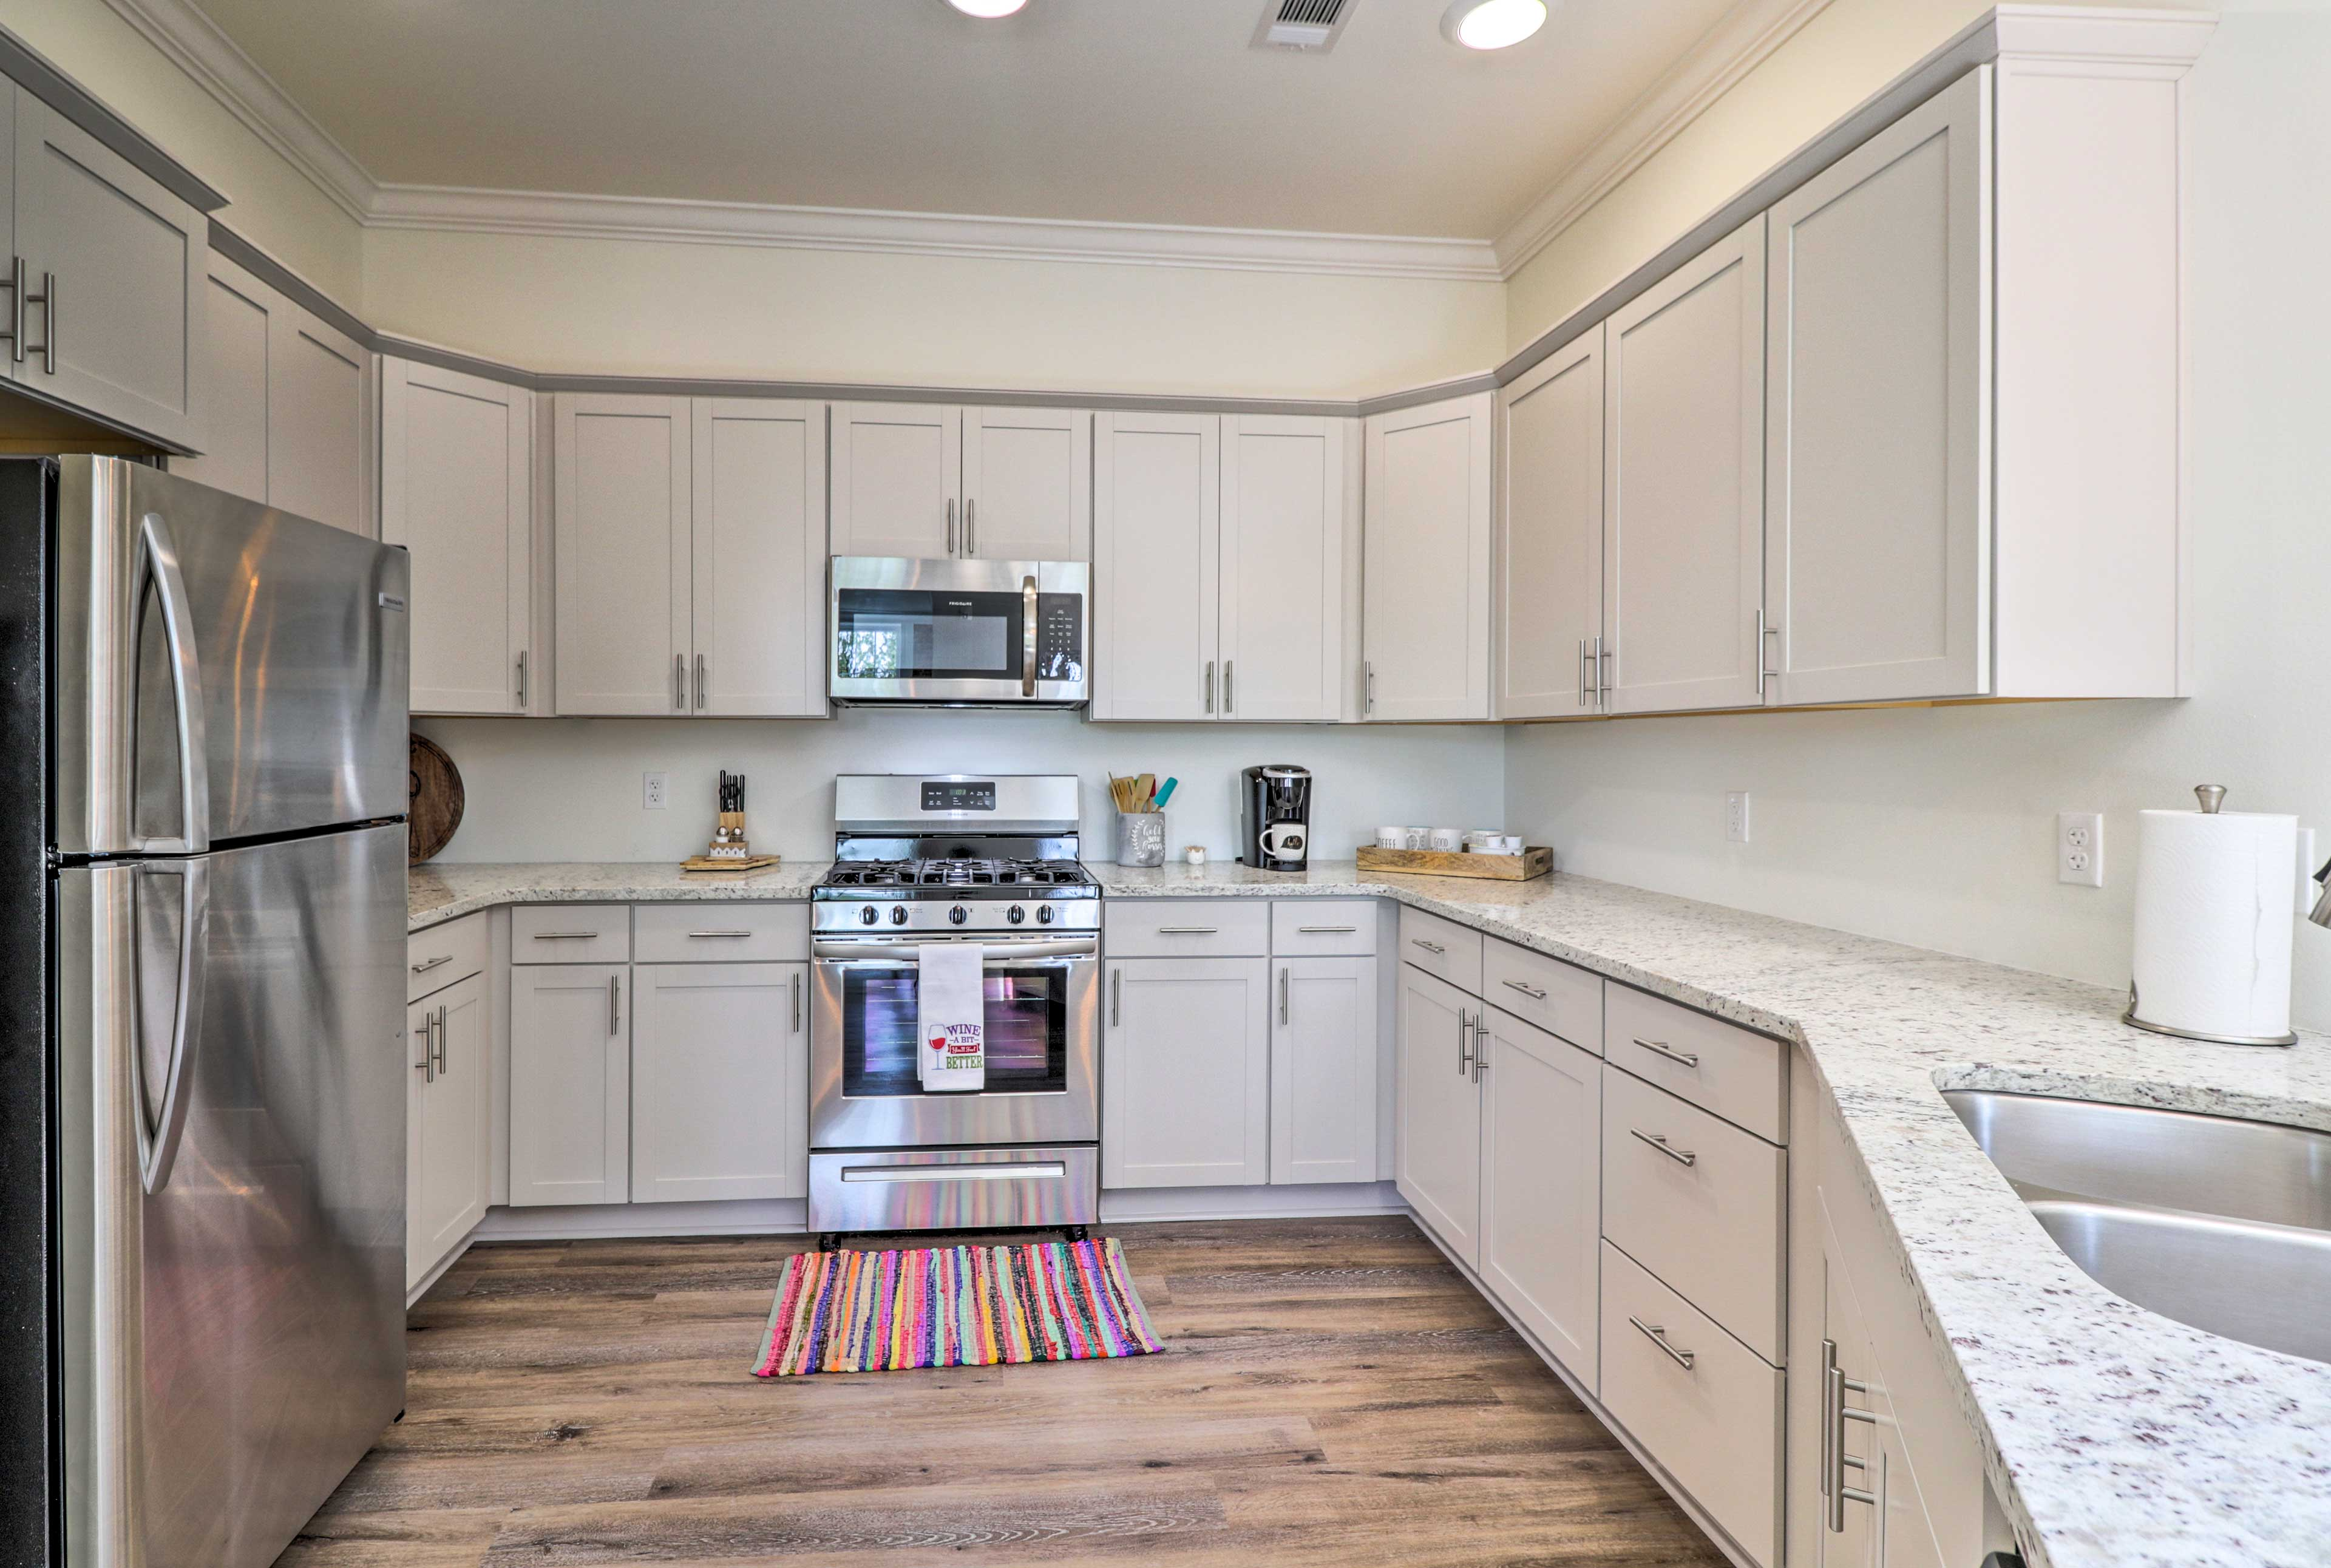 Prepare all your favorite dinners and desserts in the fully equipped kitchen.